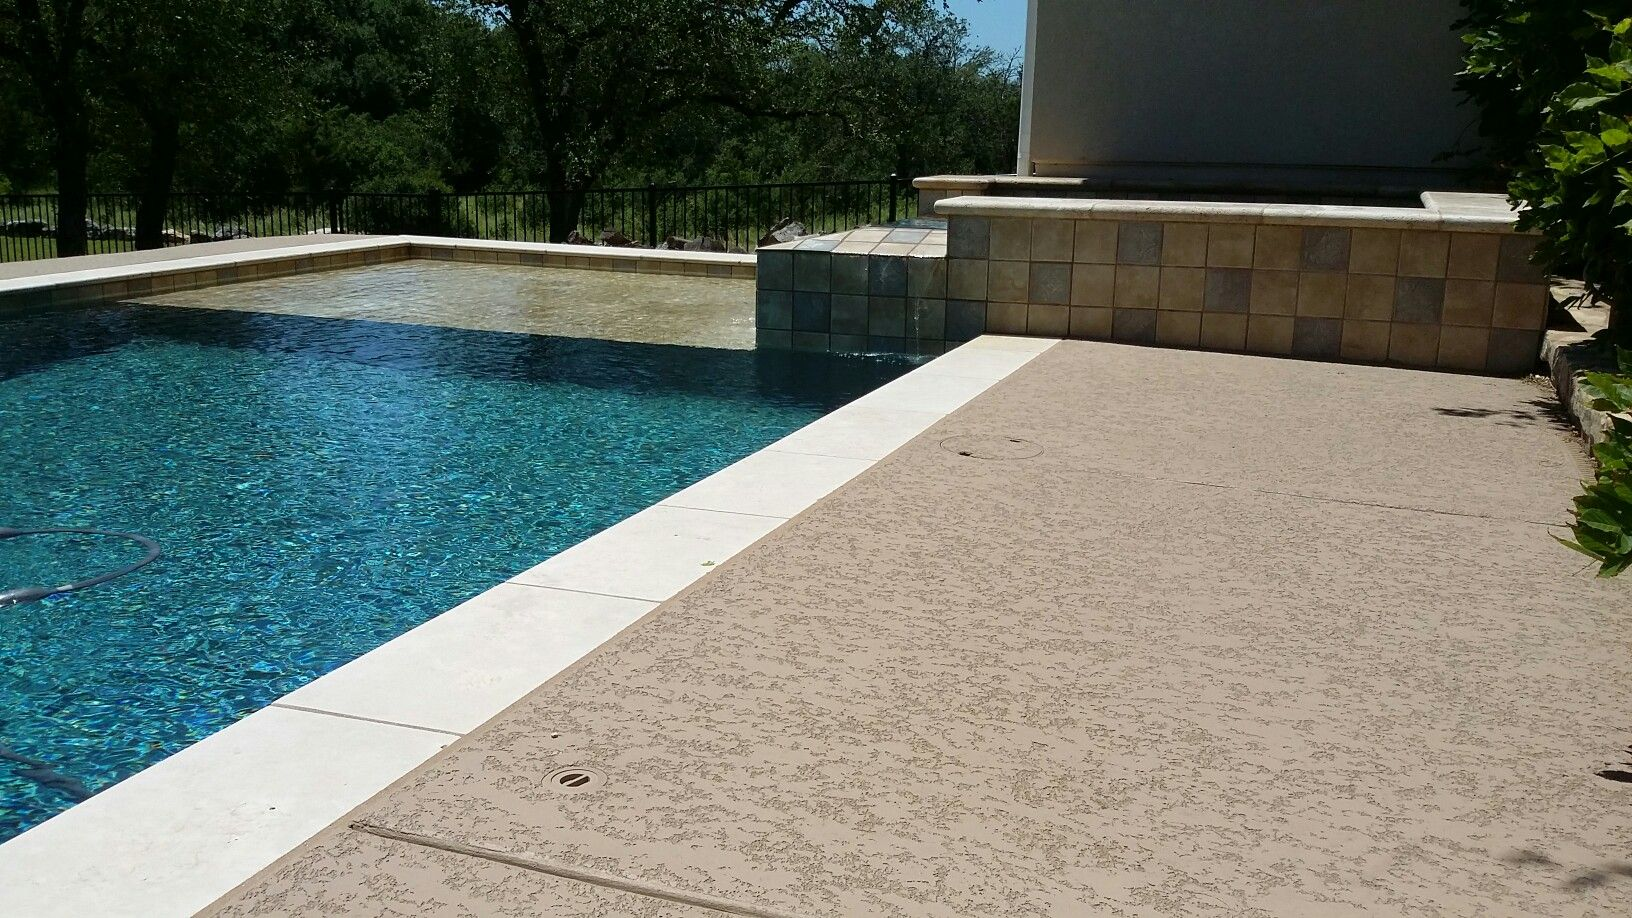 Sundek Classic Texture With A Light Natural Stone Coping Pool Deck Surface House With Porch Decks And Porches Pool